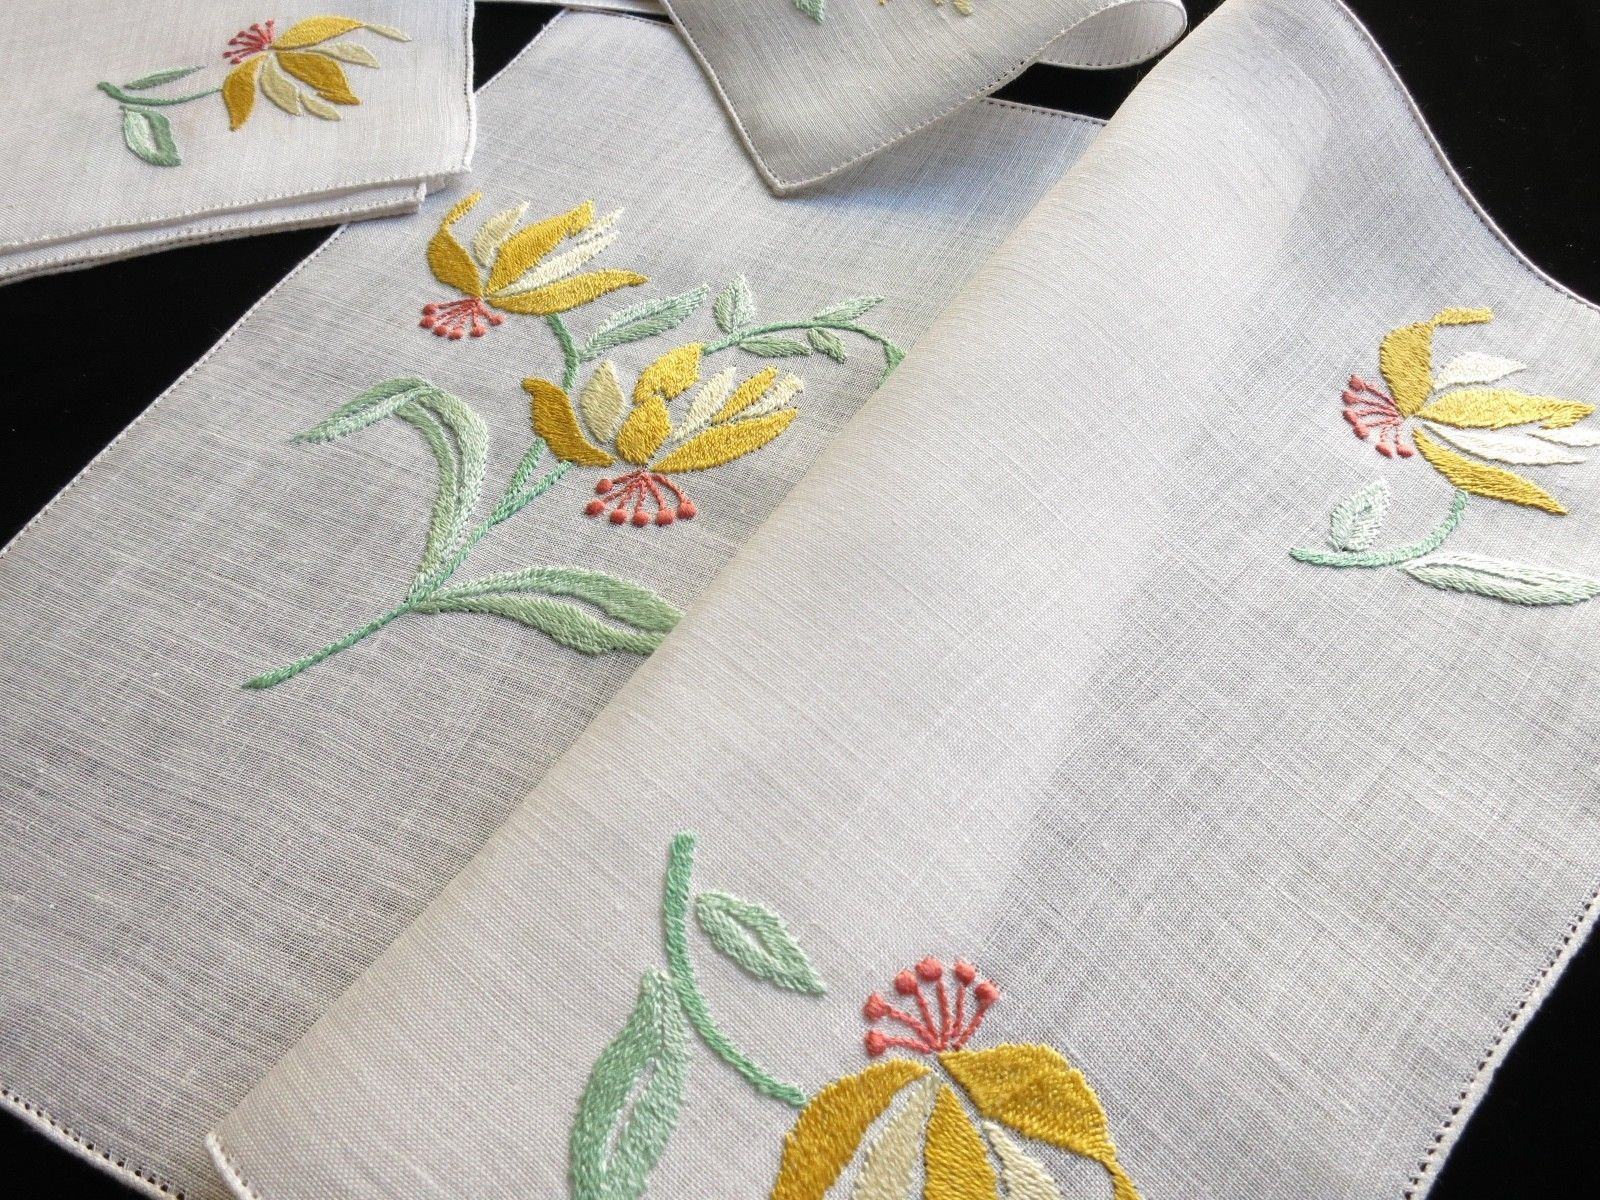 Bird Of Paradise Flowers Vintage Italian Hand Embroidery Linen 12pc Placemat Set Hand Embroidery Hand Embroidery Tutorial Embroidery Patterns Vintage